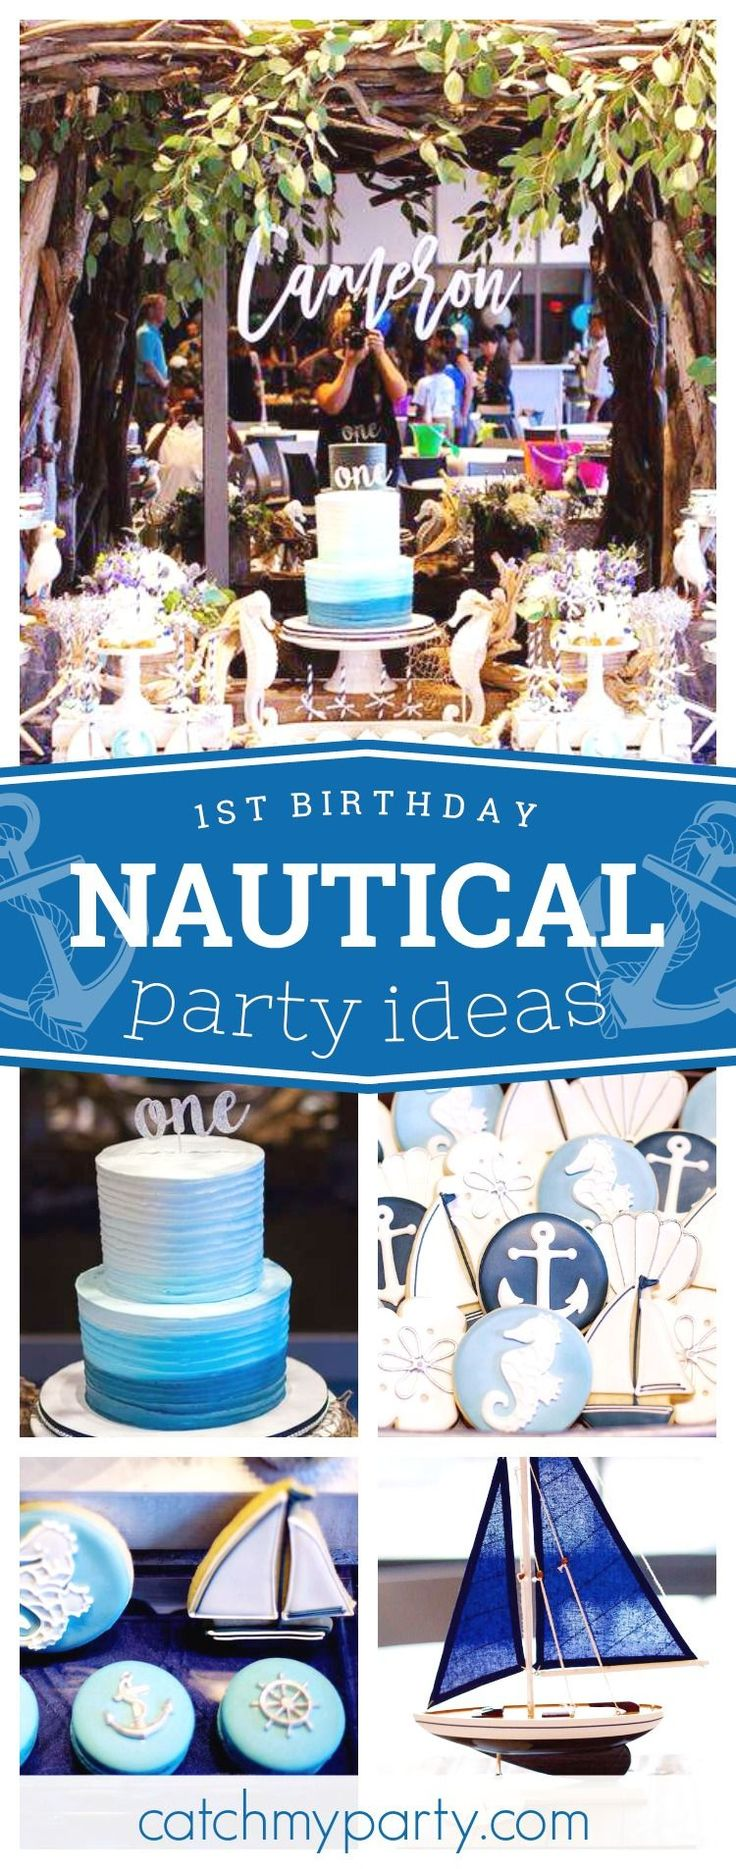 Swoon over this gorgeous Rustic Nautical 1st Birthday Party! The sugar coated cookies are awesome!! See more party ideas and share yours at CatchMyParty.com #catchmyparty #nautical #rustic #1stbirthday #boybirthdayparty